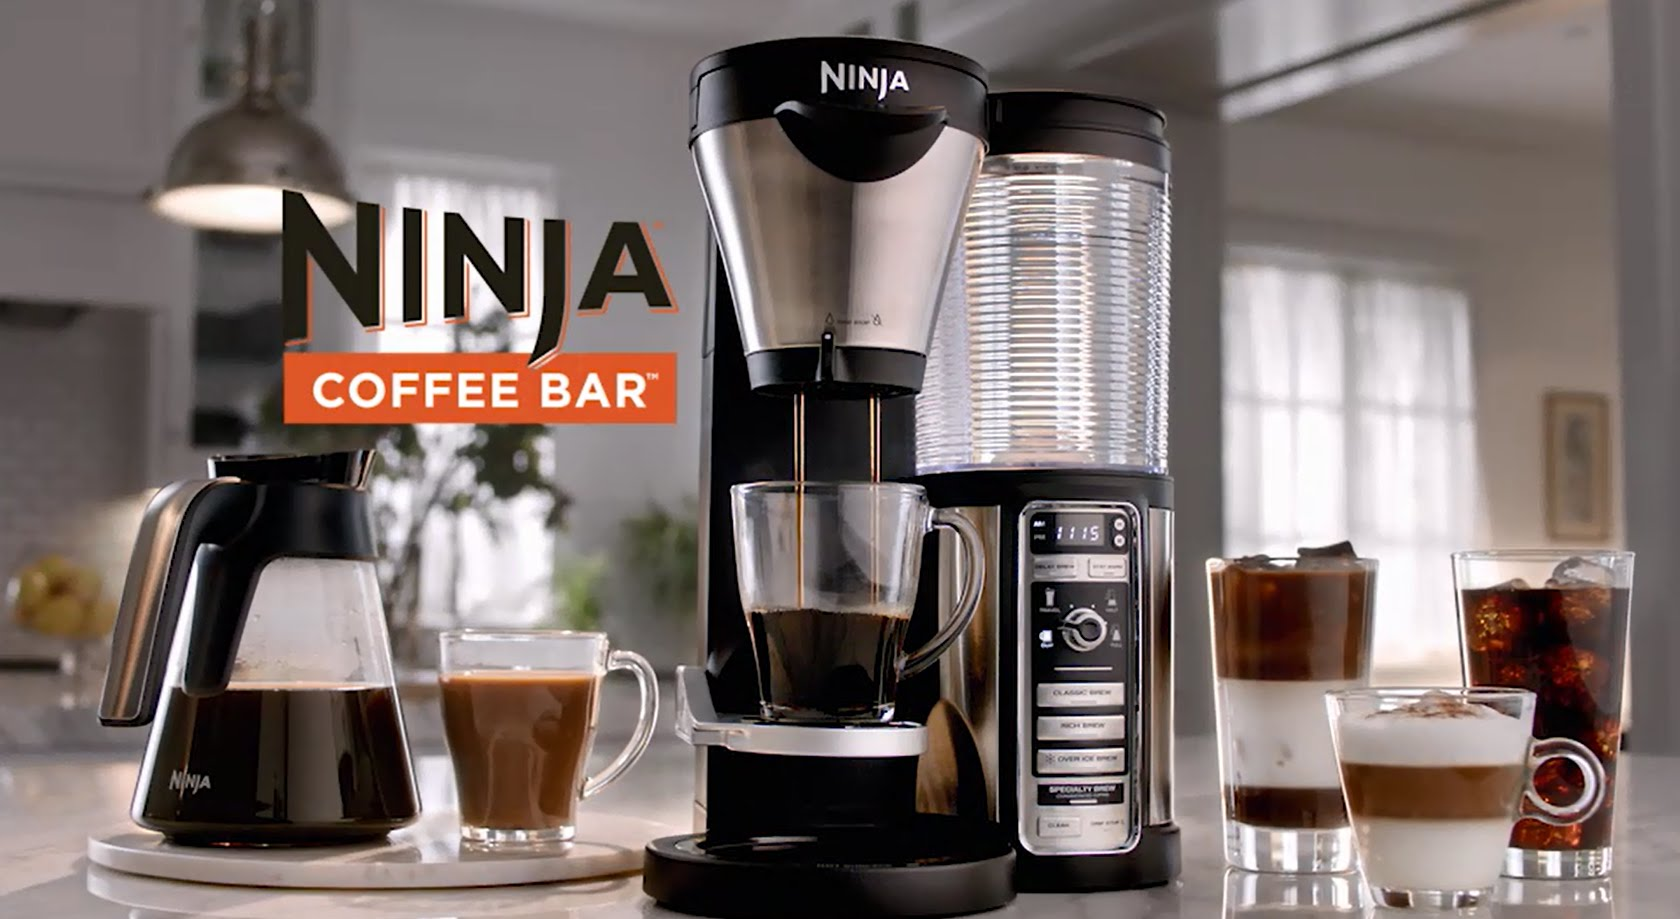 Ninja Coffee Bar set giveaway